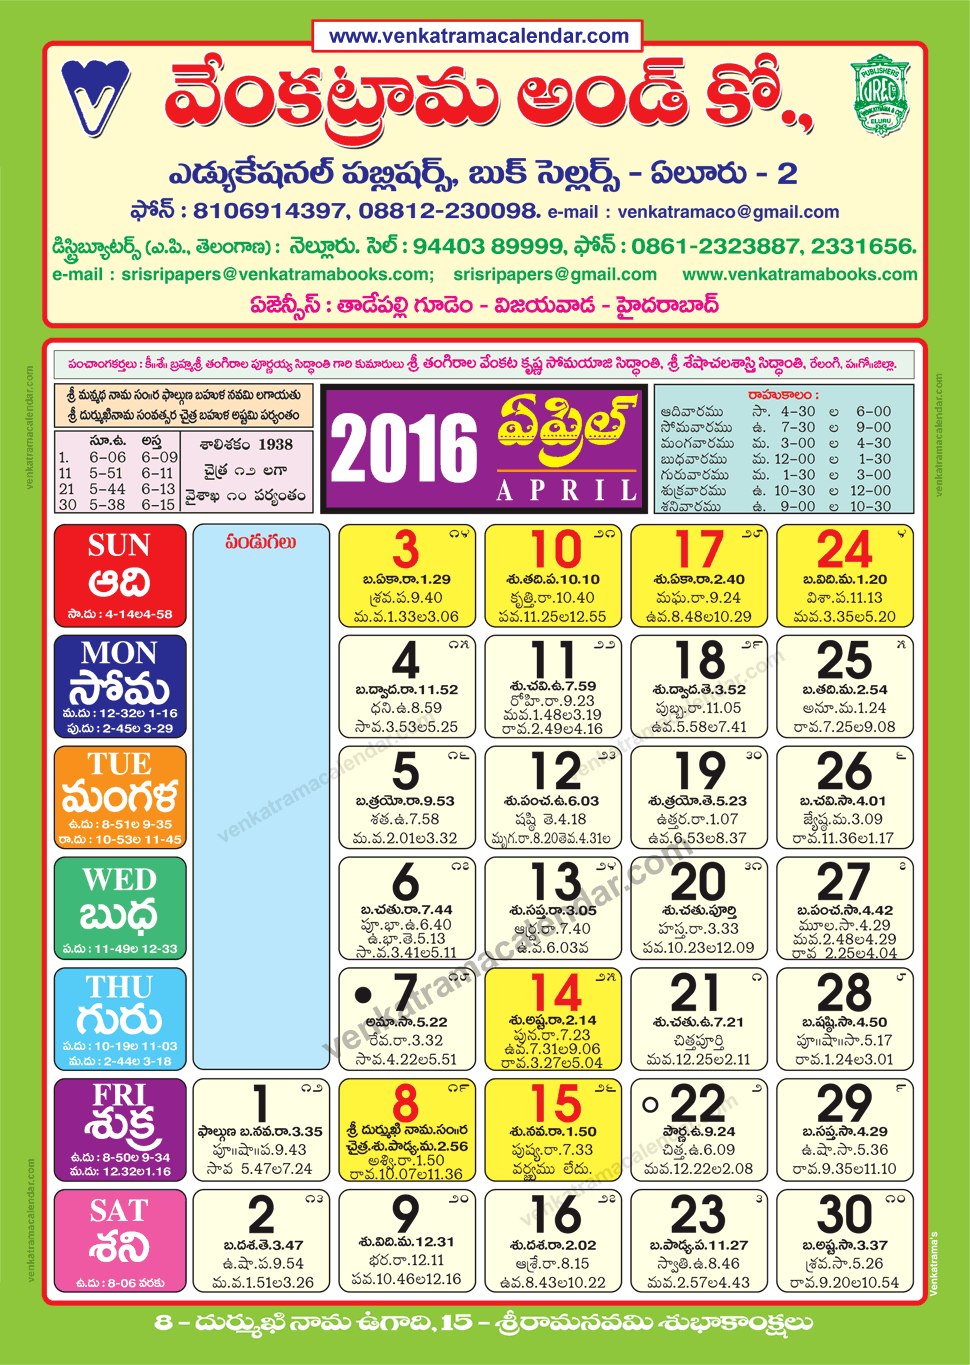 April Venkatrama Co Calendar : April venkatrama co multi colour telugu calendar